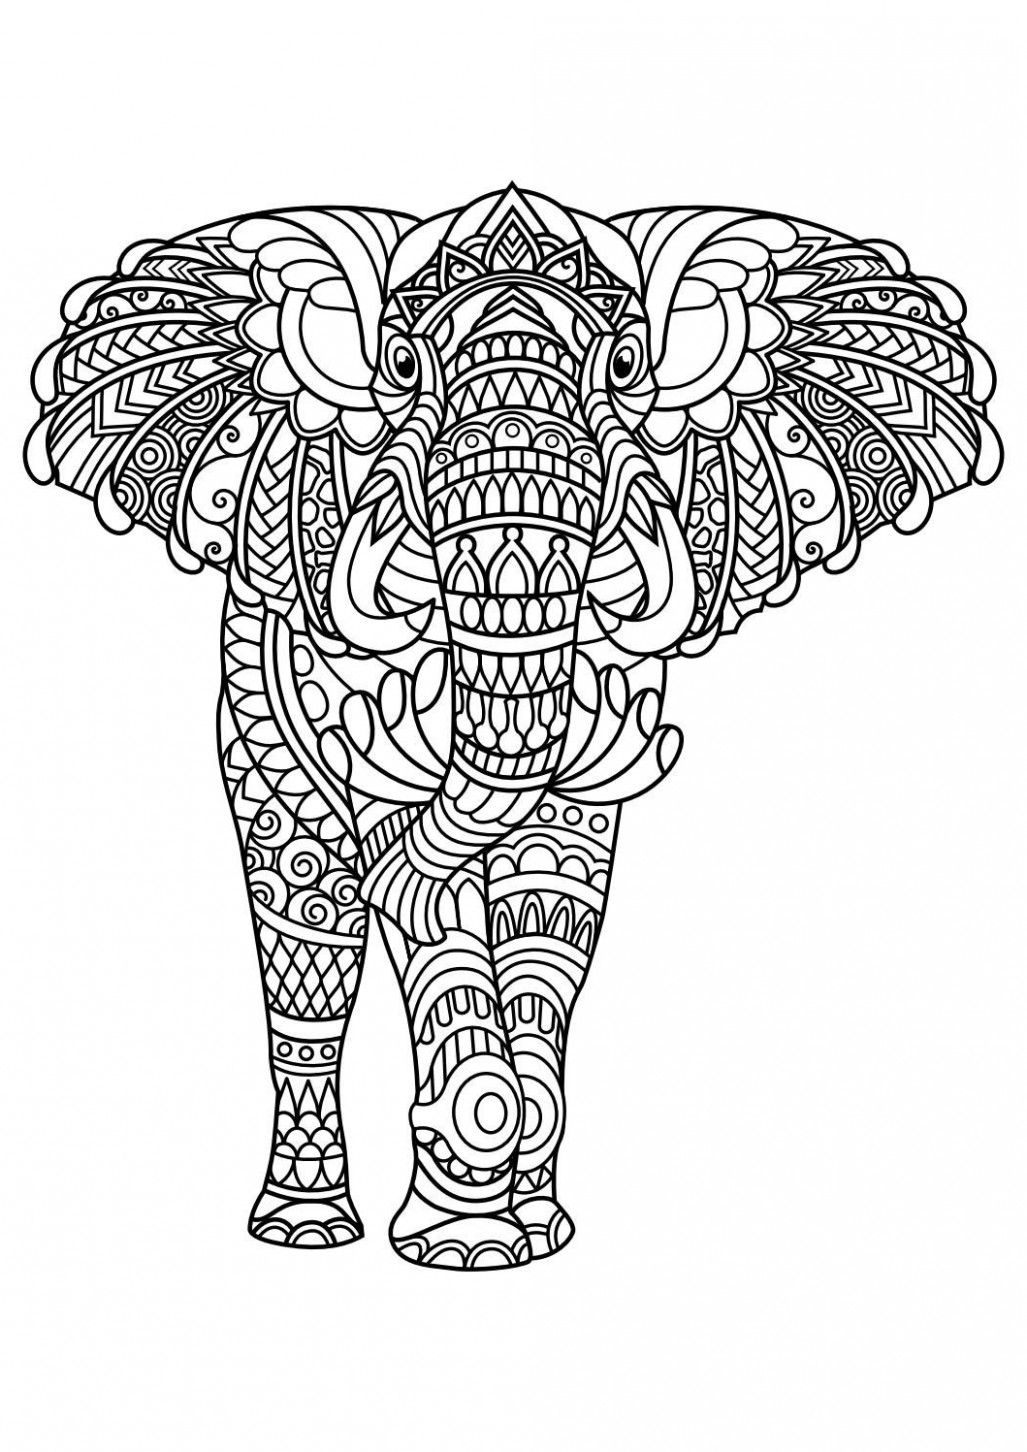 10 Great Animal Coloring Pages For Adults Pdf Ideas That You Can